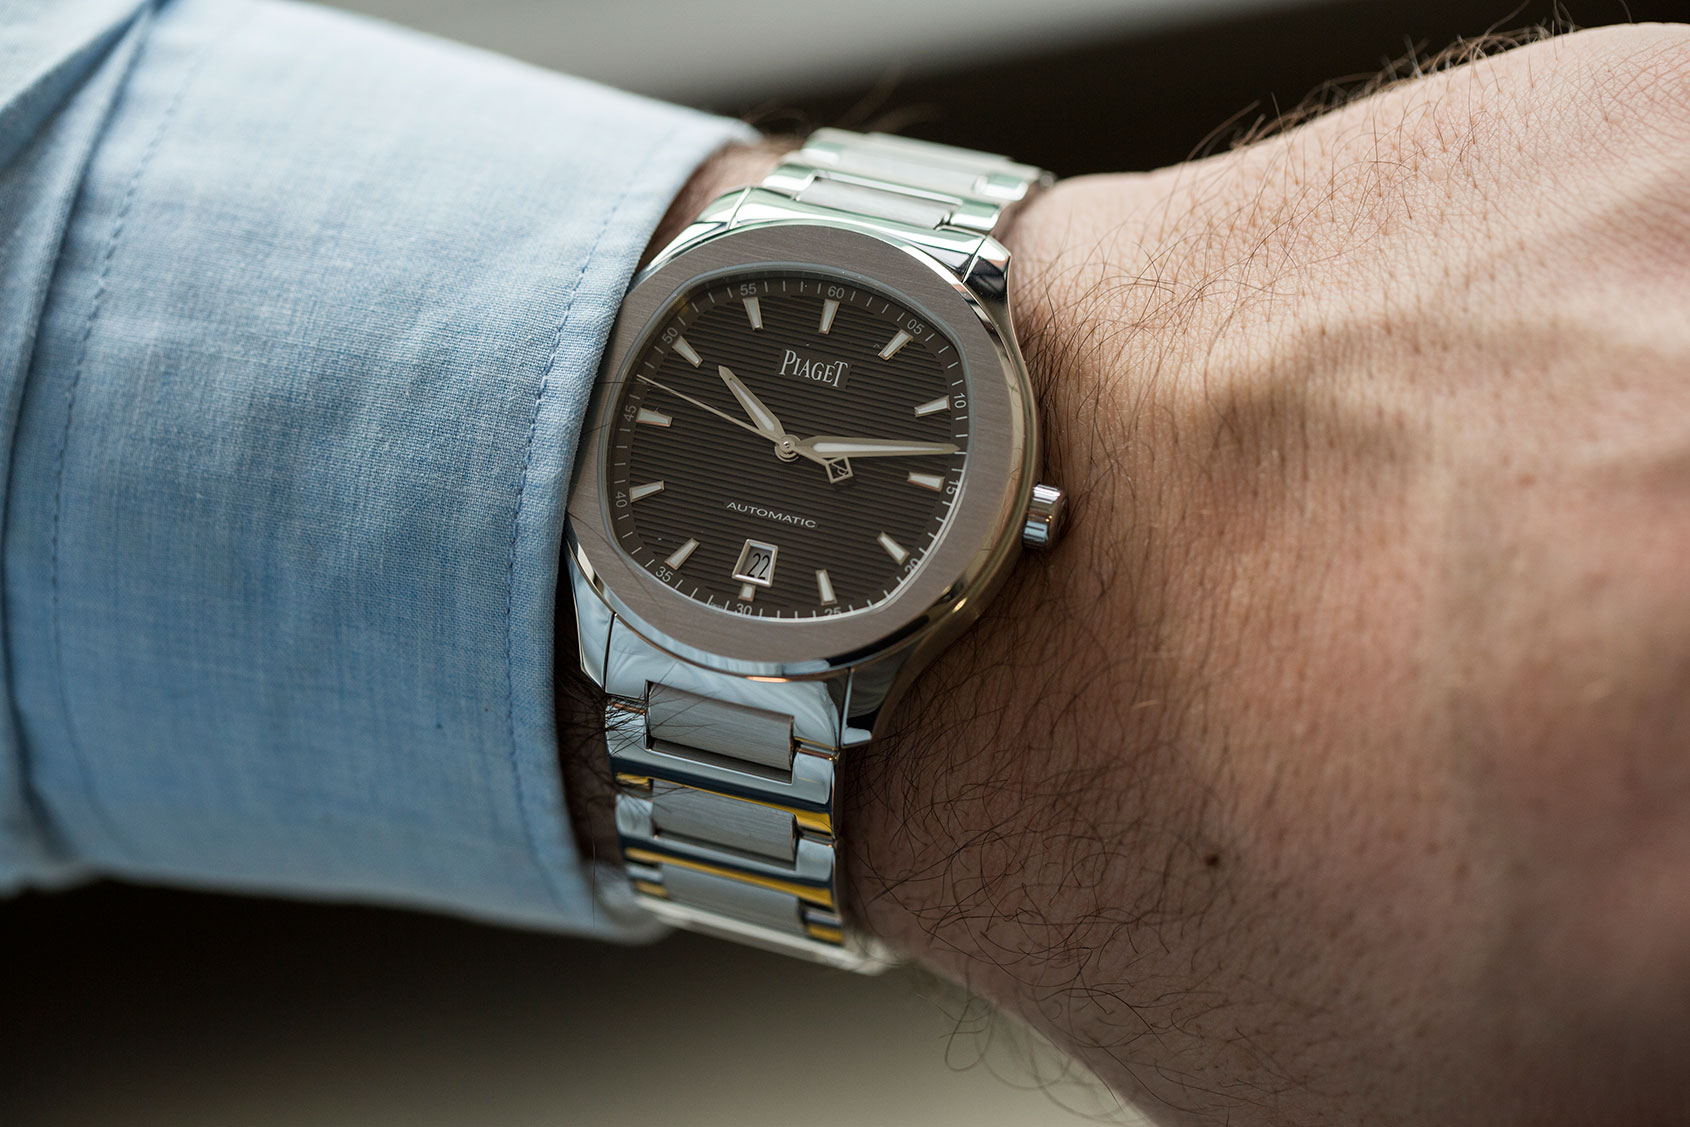 Piaget Polo S Indepth Review Does it Really Change the Game